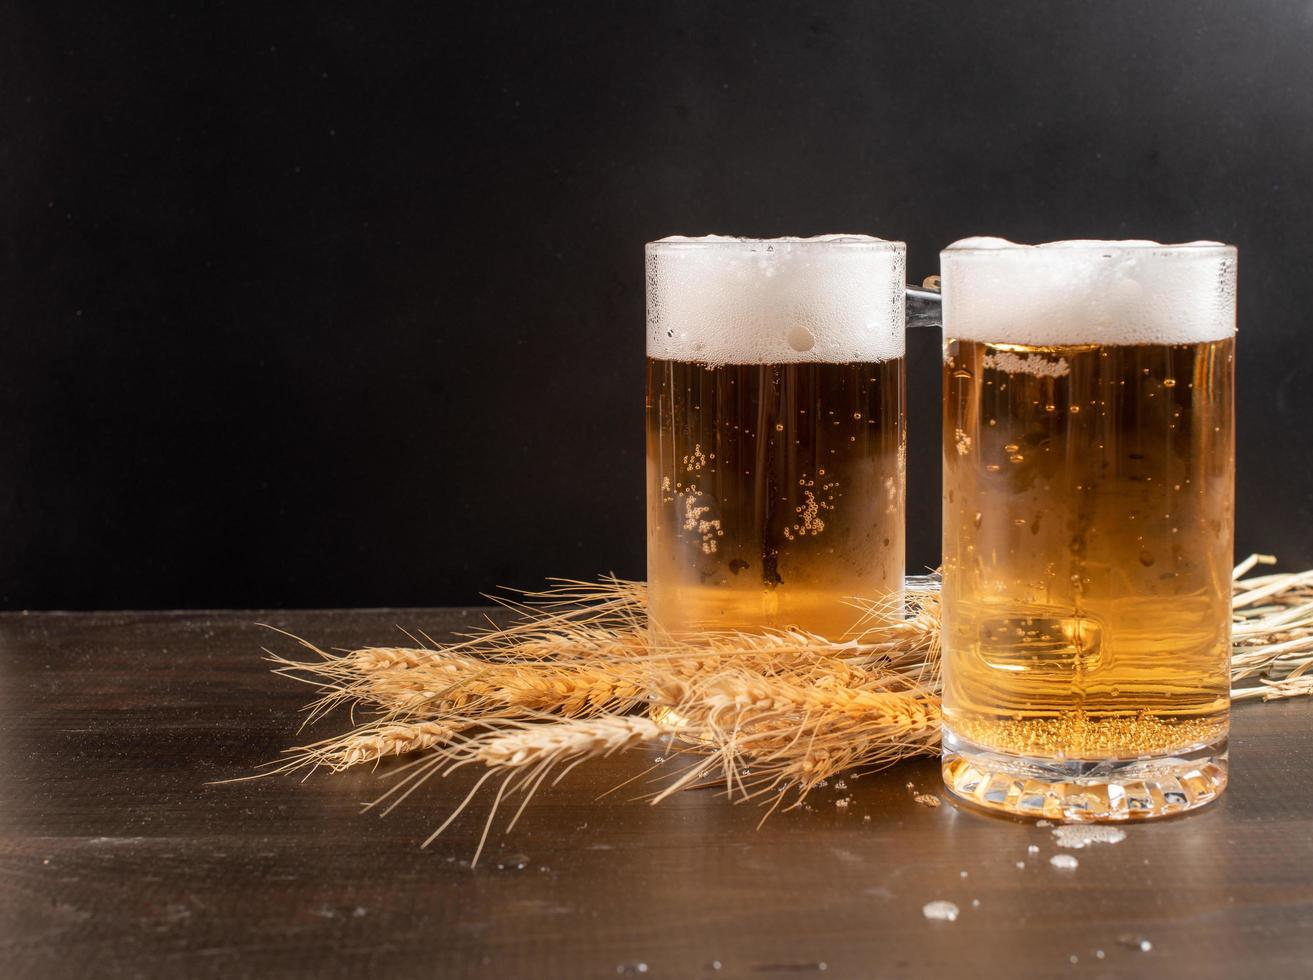 Two glasses of beer with wheat stalks photo